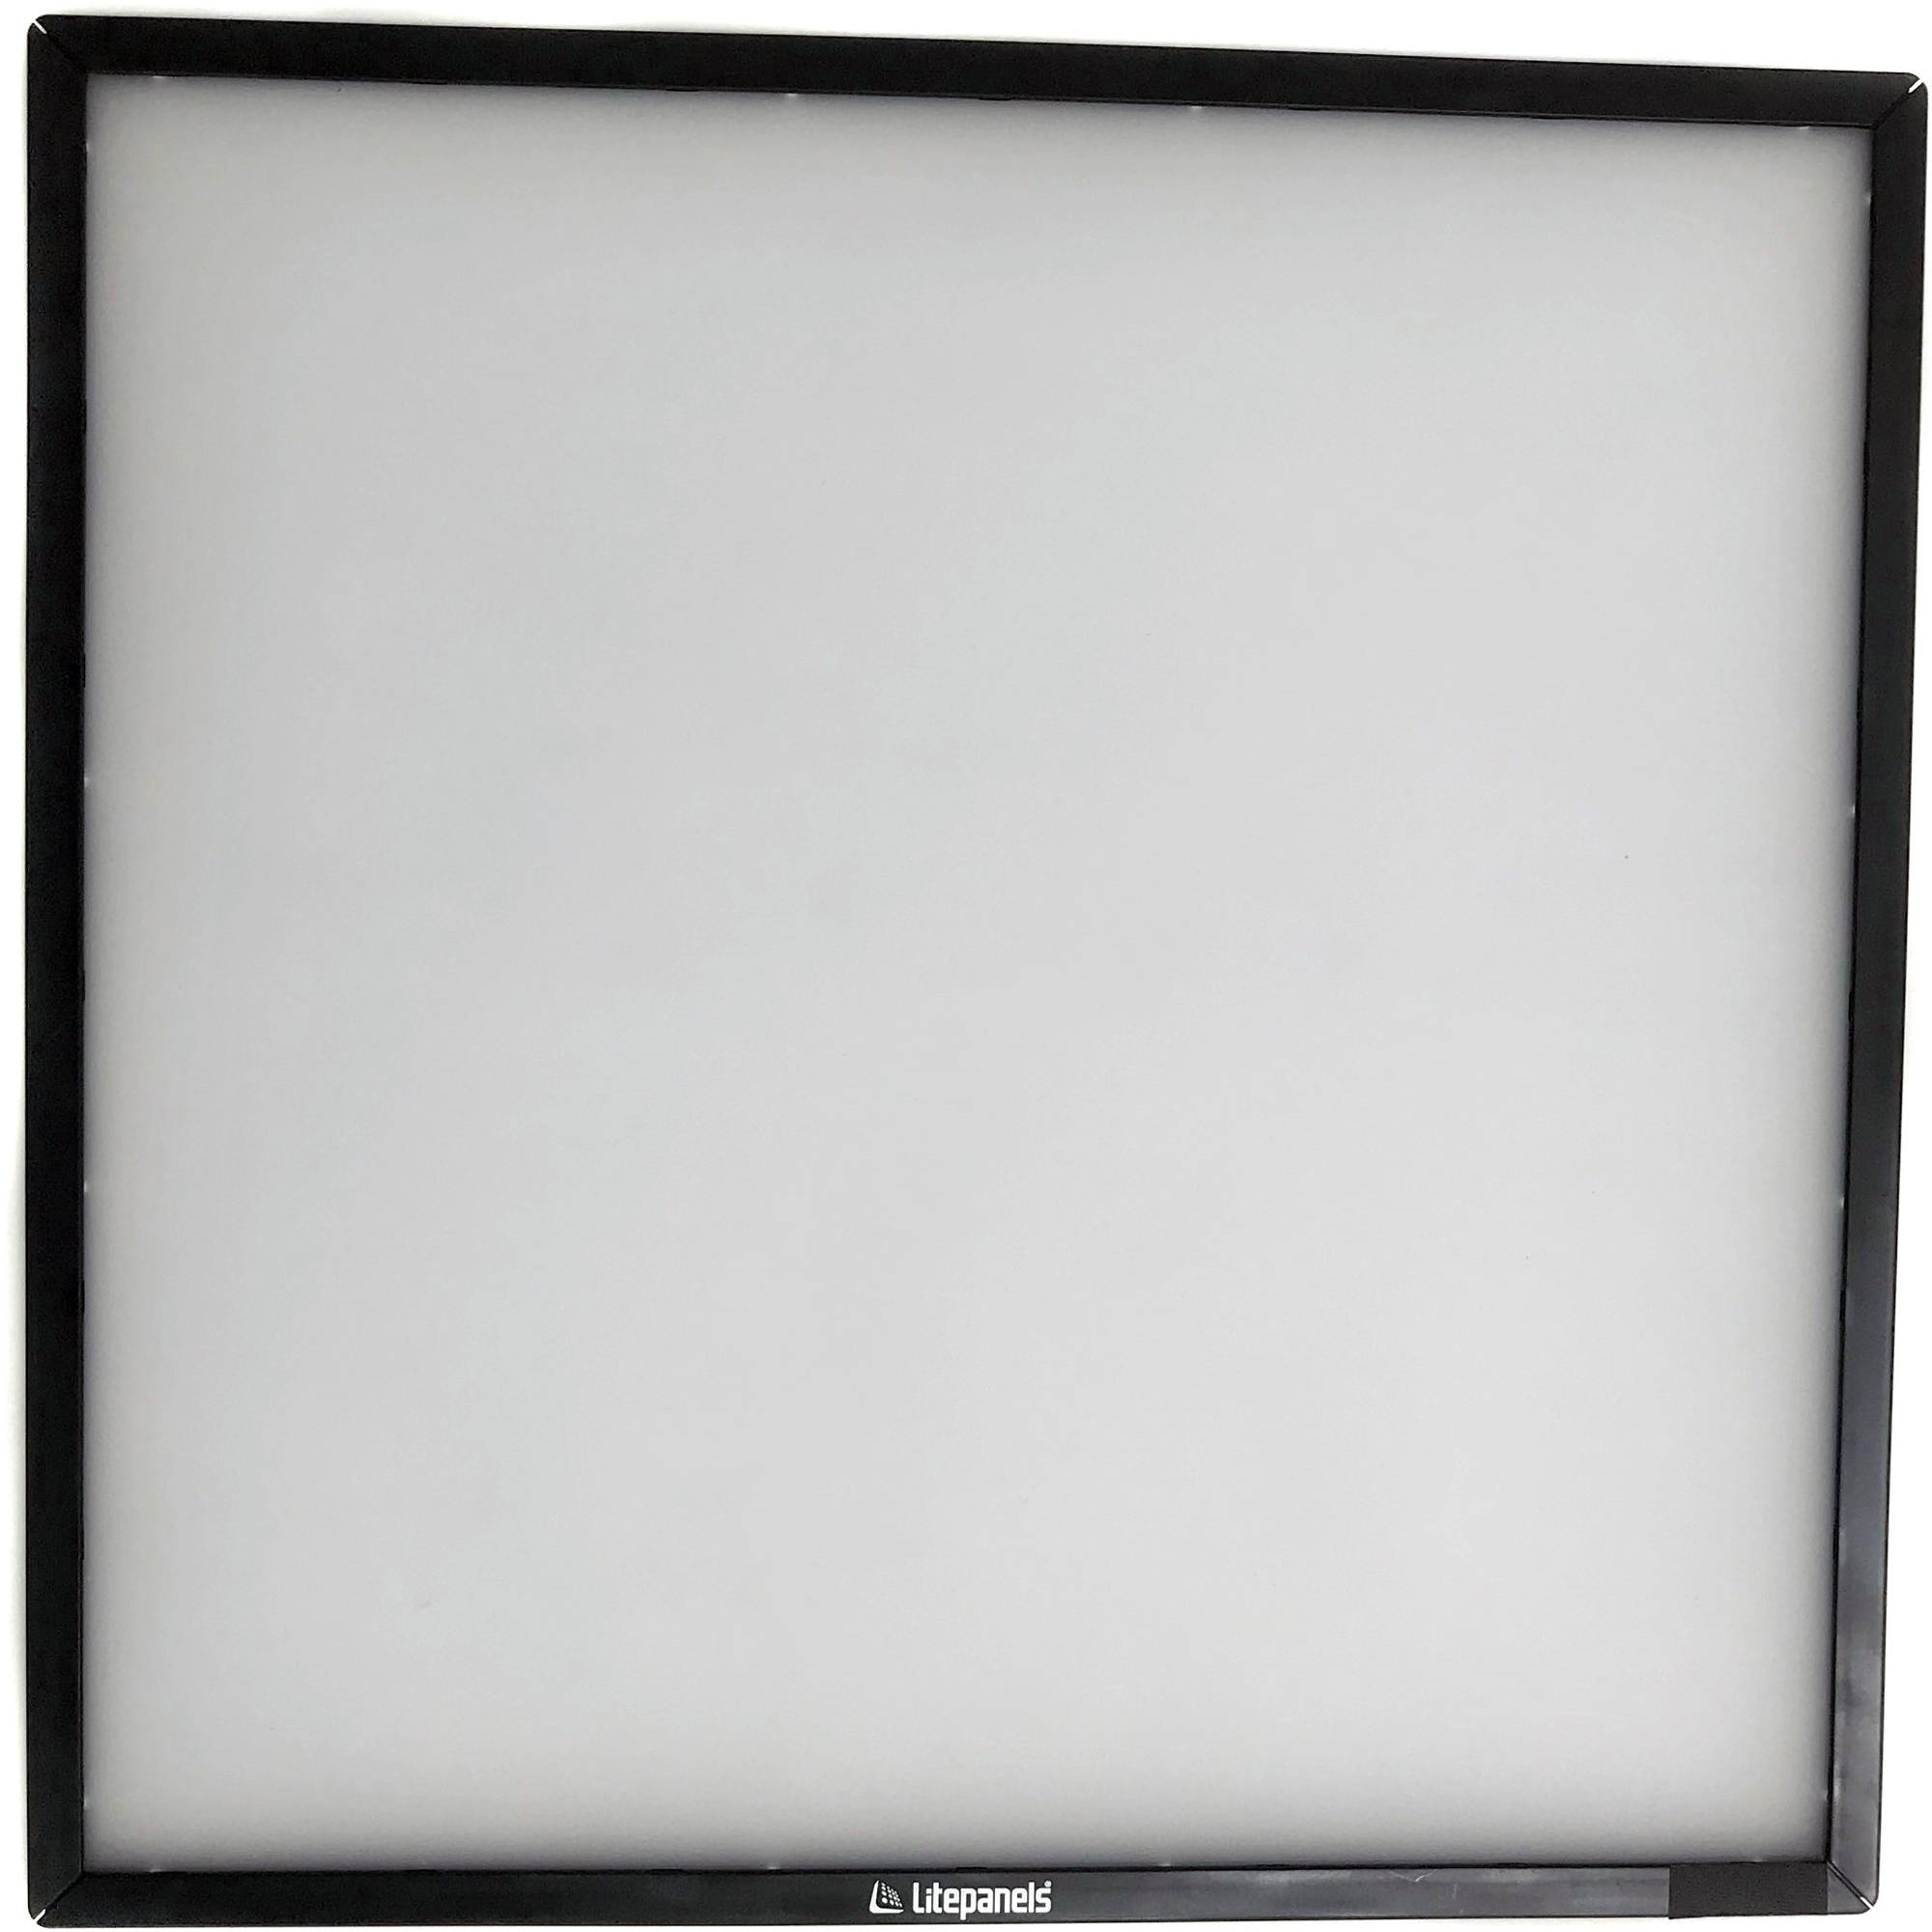 Litepanels Heavy Diffuser for Gemini 1x1 LED Panel